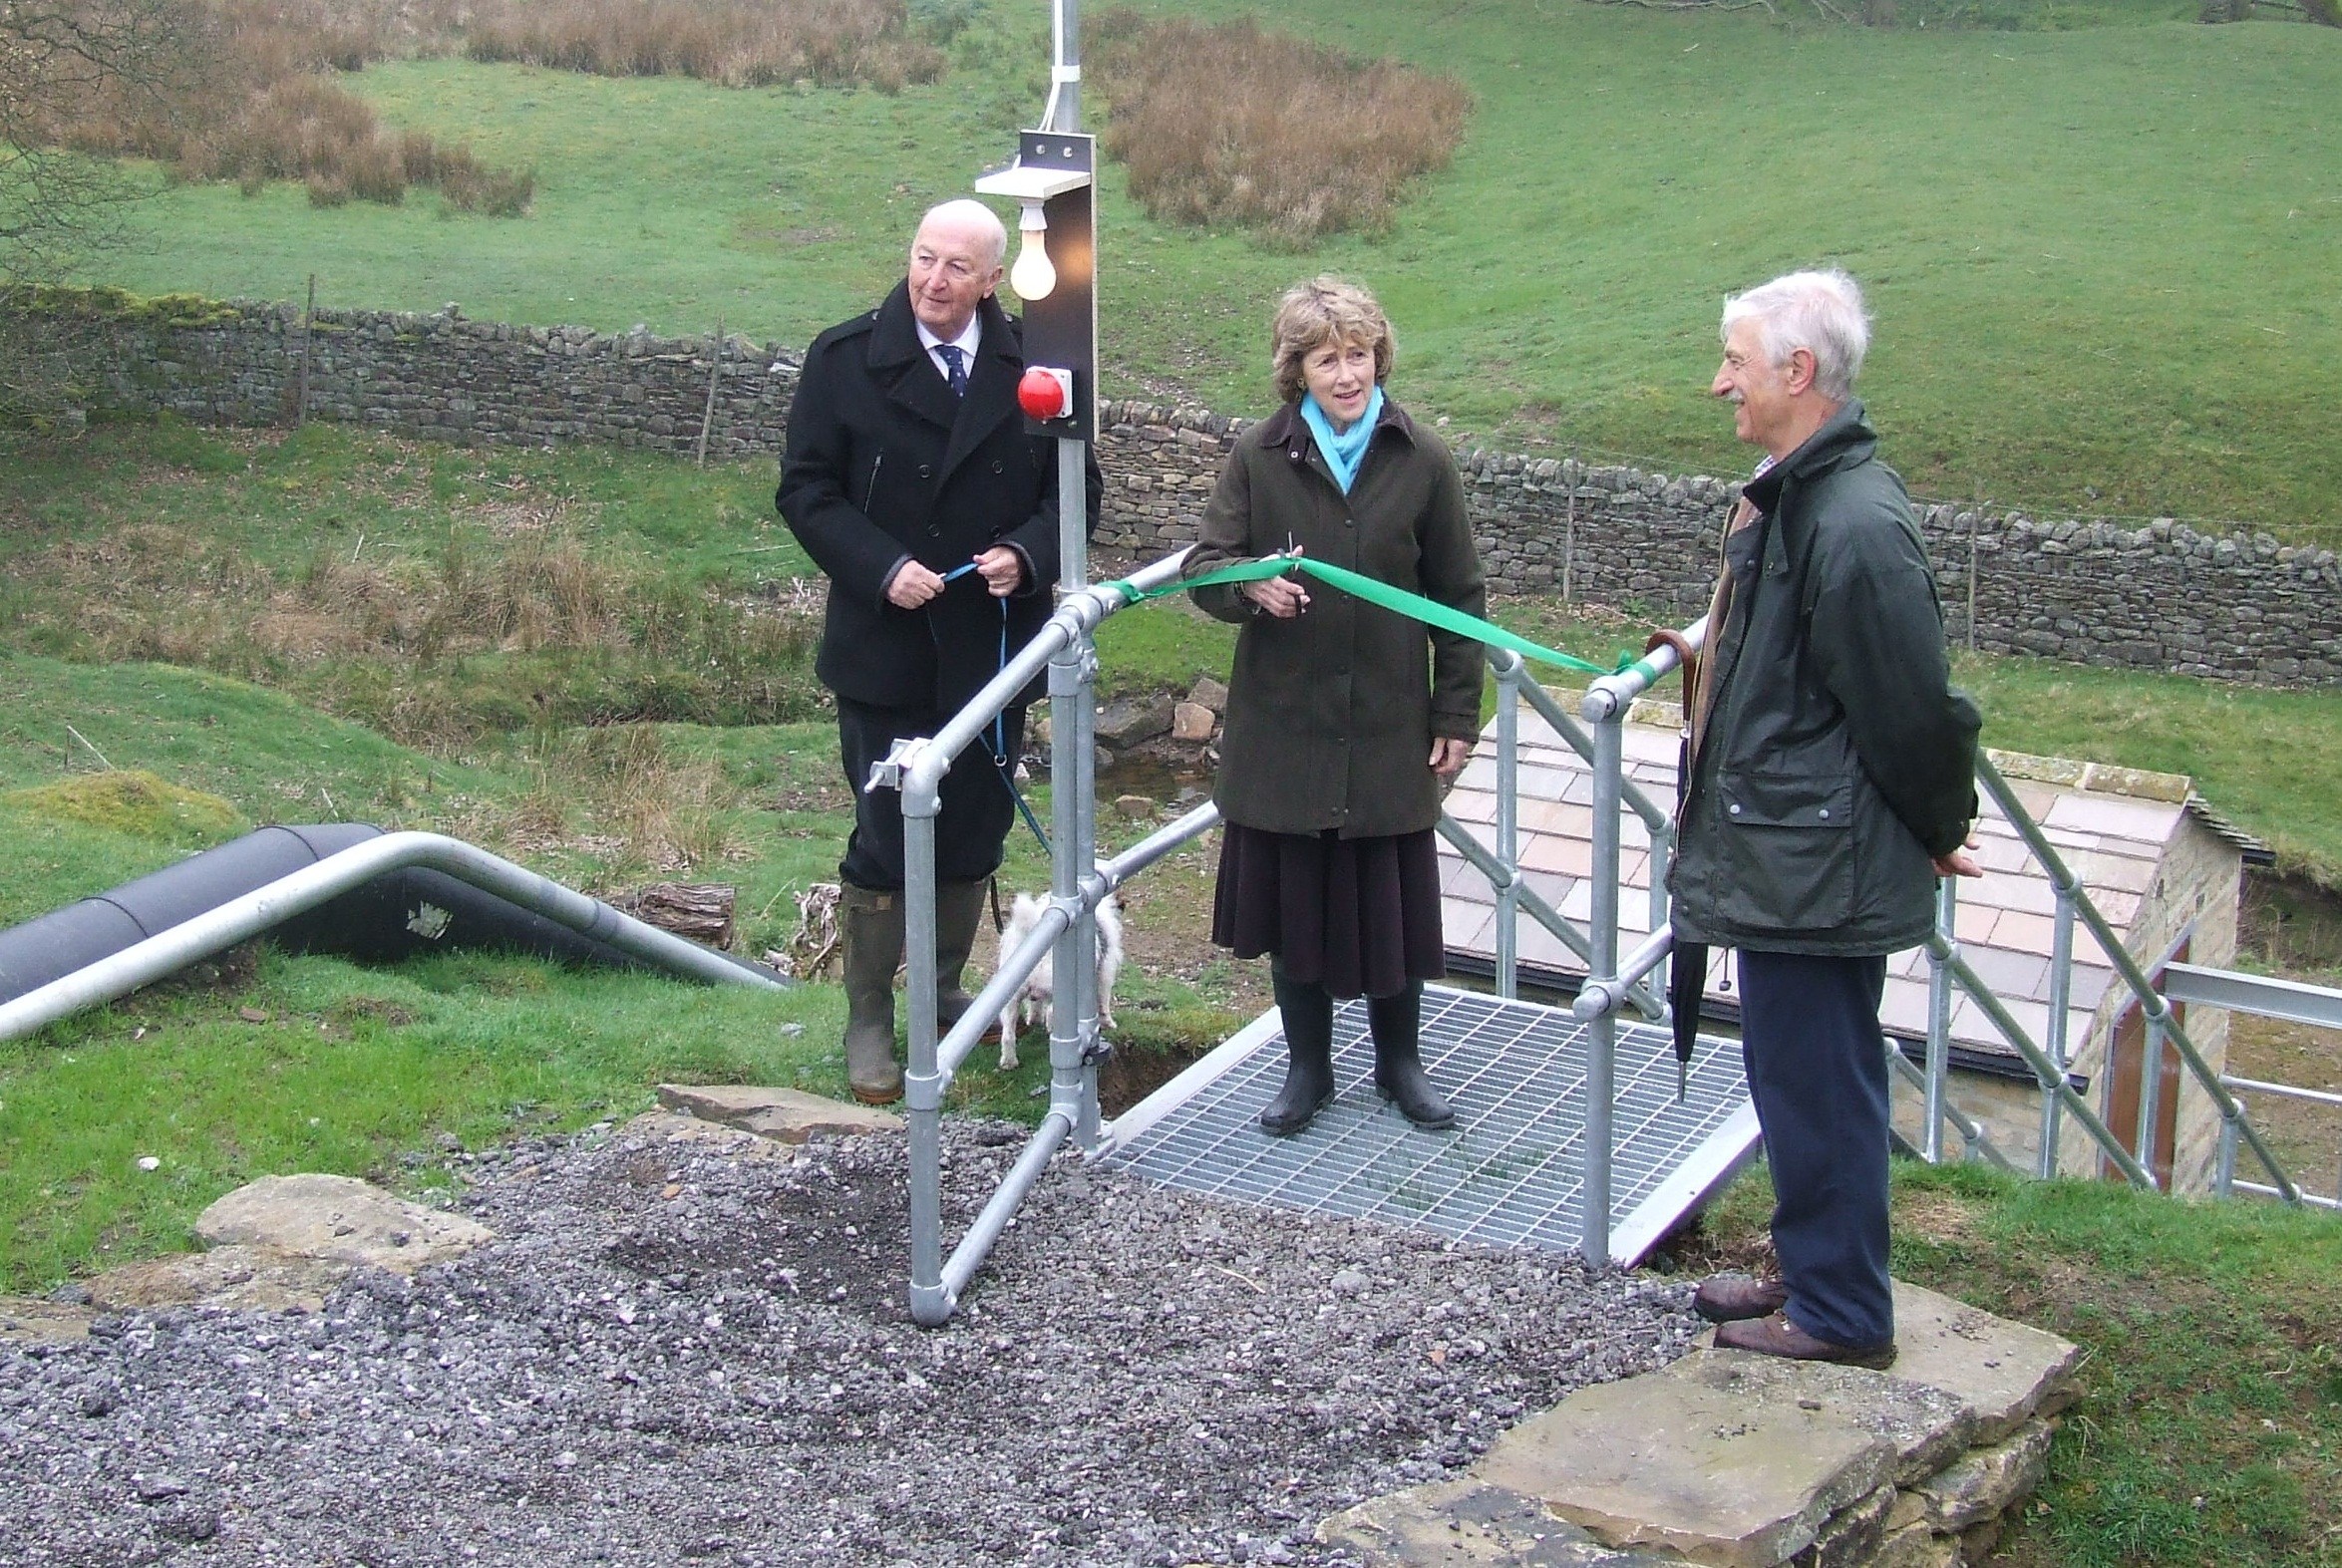 The Duke and Duchess of Devonshire, Peregrine and Amanda Cavendish, with engineer Norman Wheat at the new hydro-electric system